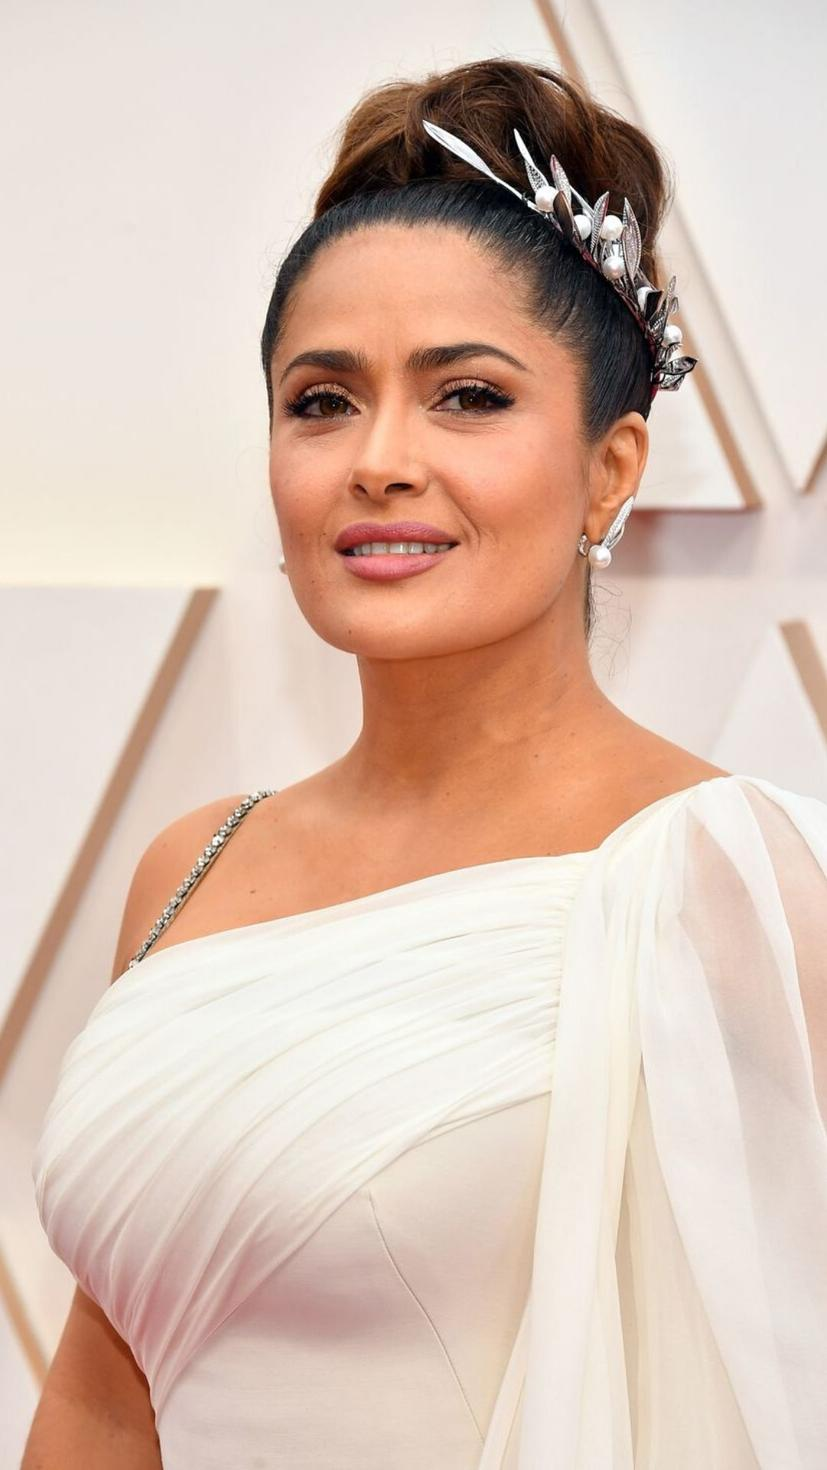 Salma Hayek redefined the word elegance with her classy up-do and gorgeous headpiece. It is fascinating how she matched her hair jewelry with her earrings and of course, her makeup is breathtaking. Well done Salma!